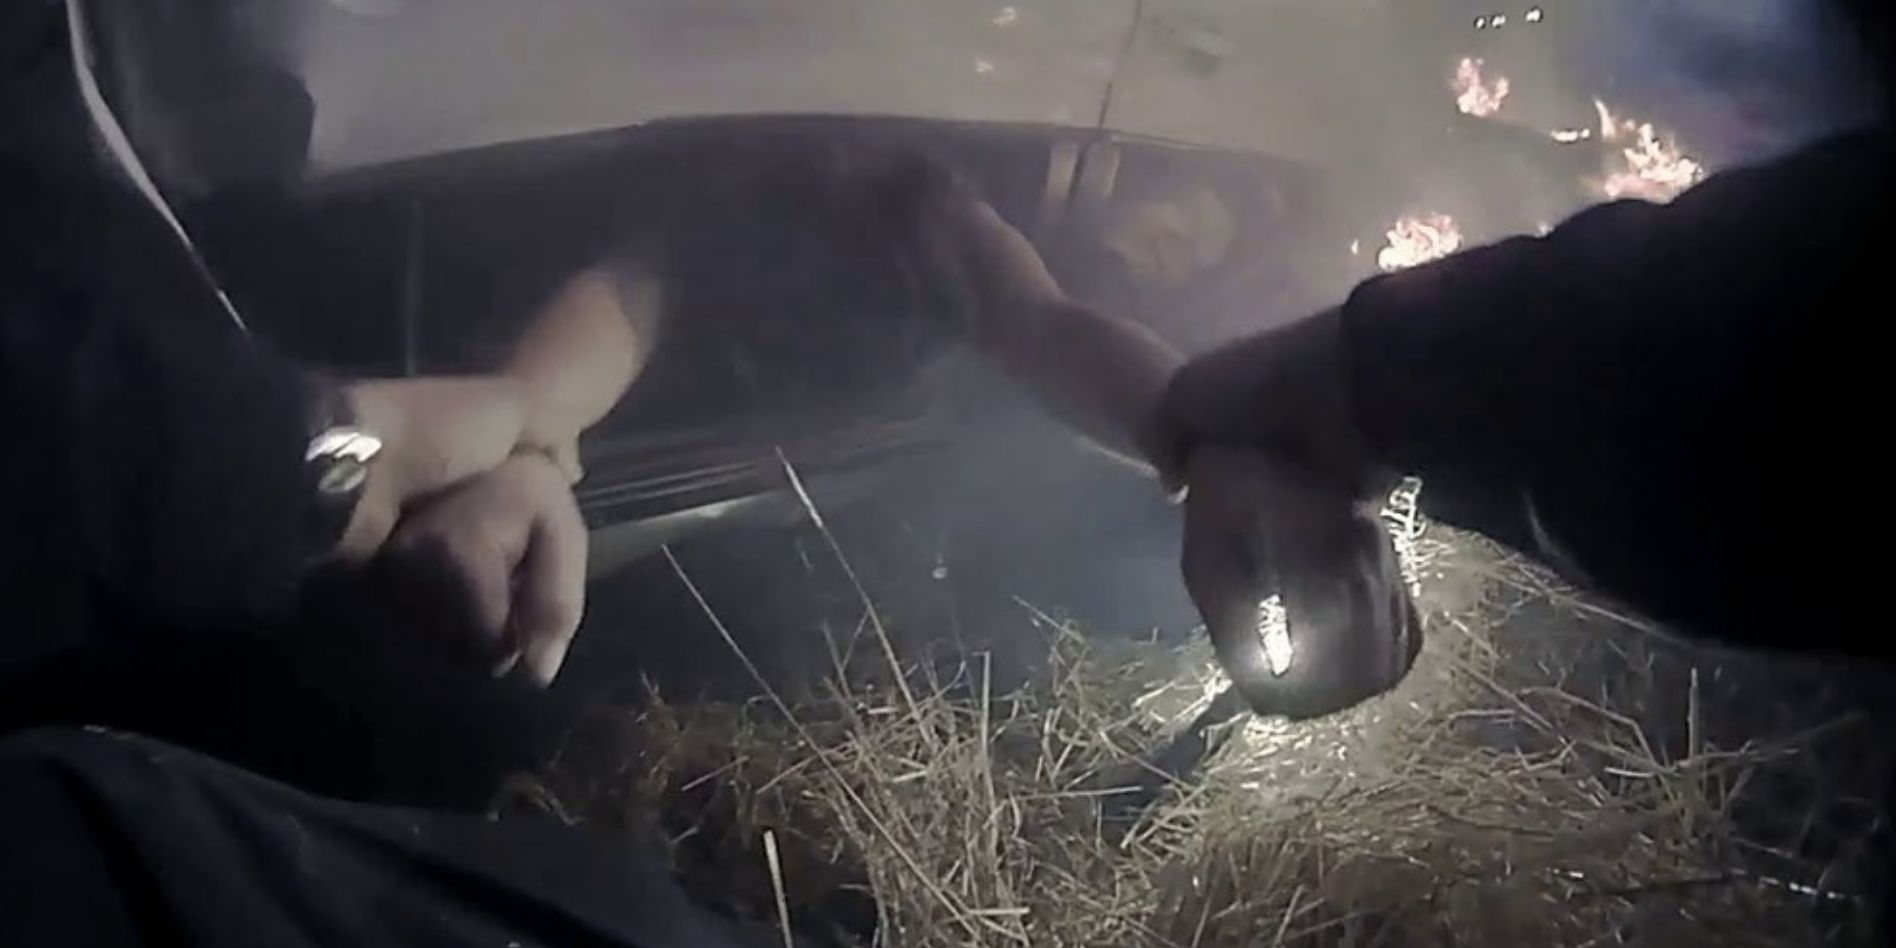 Davis Police officer pulls woman out of burning car, (Davis Police Department)